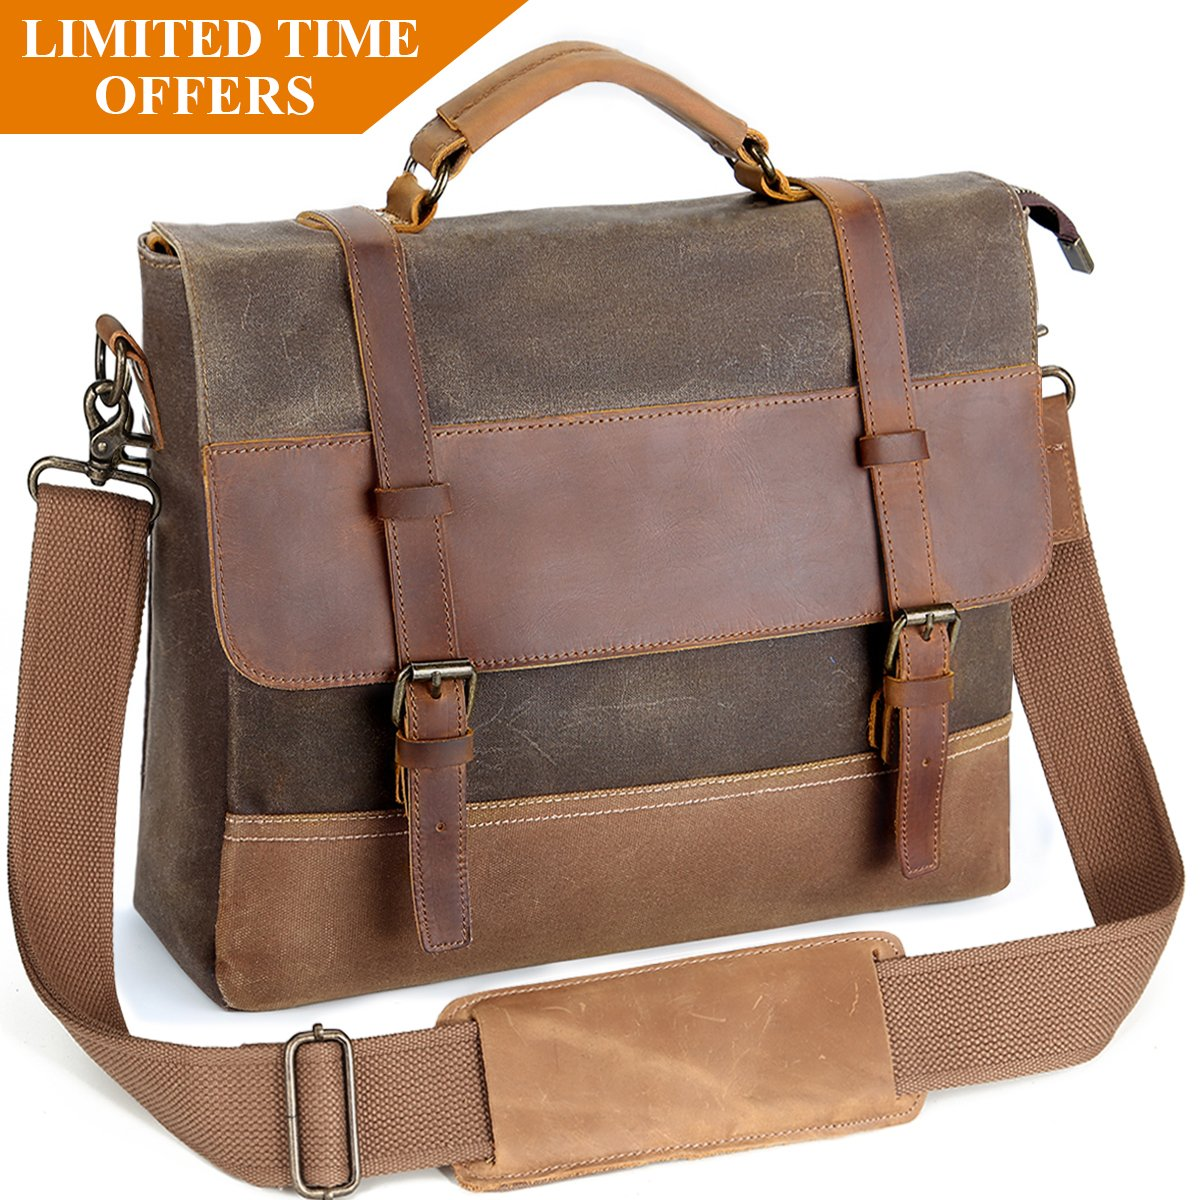 Mens Laptop Messenger Bags 14 inch, Tocode Water Resistant Leather Canvas Briefcase, Durable Satchel Shoulder Bags Large Computer Bags Office Tablet Bag for School, Work, Brown